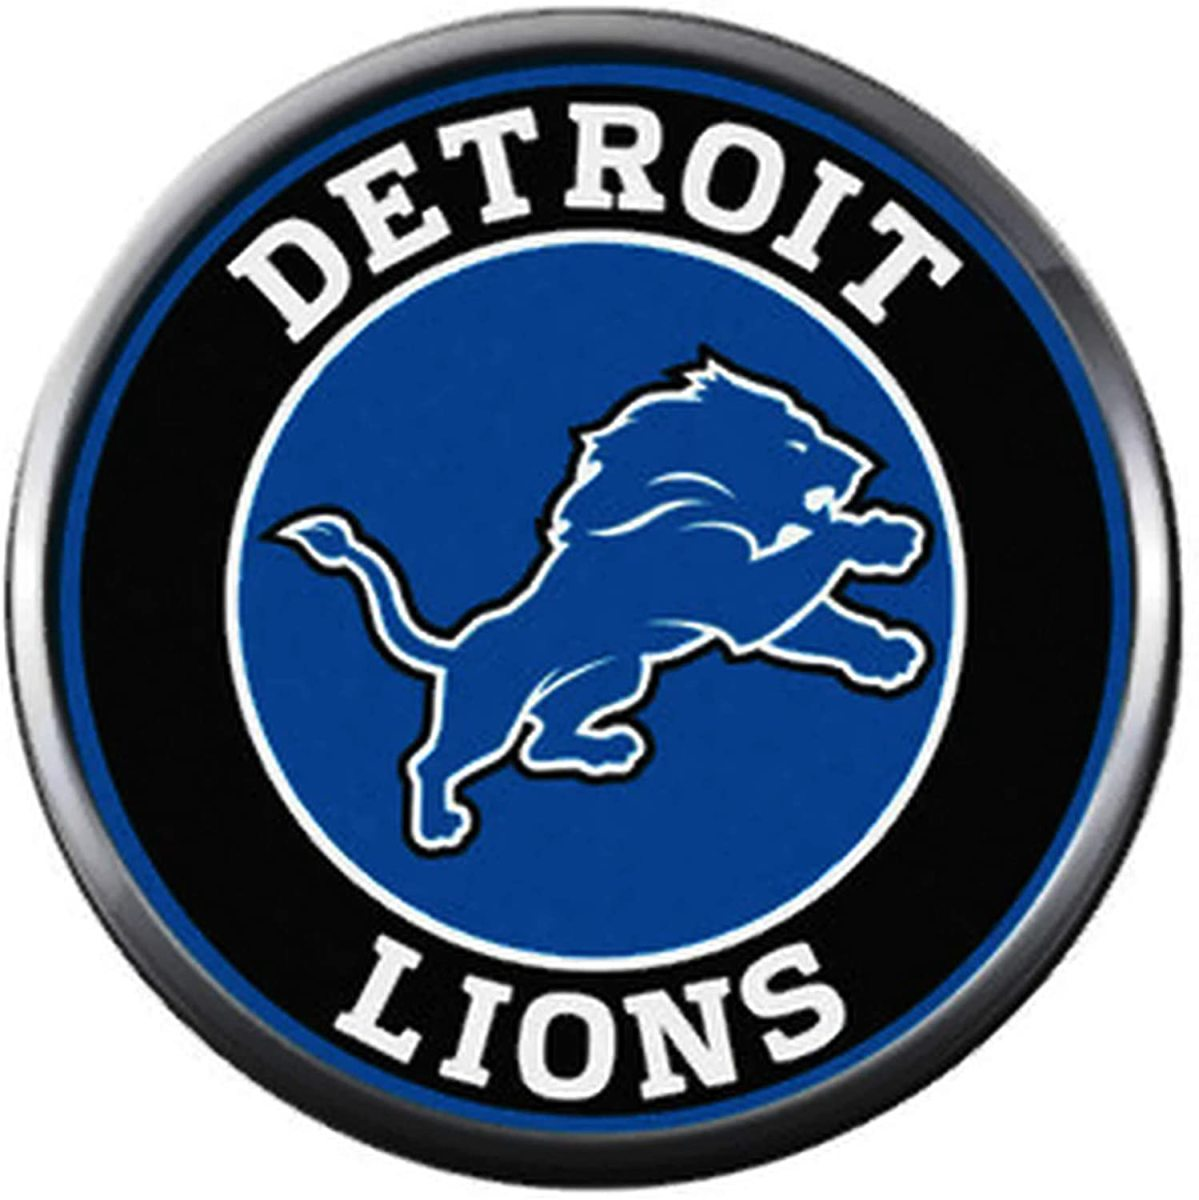 In 1935, the Detroit Lions were the NFL champions.